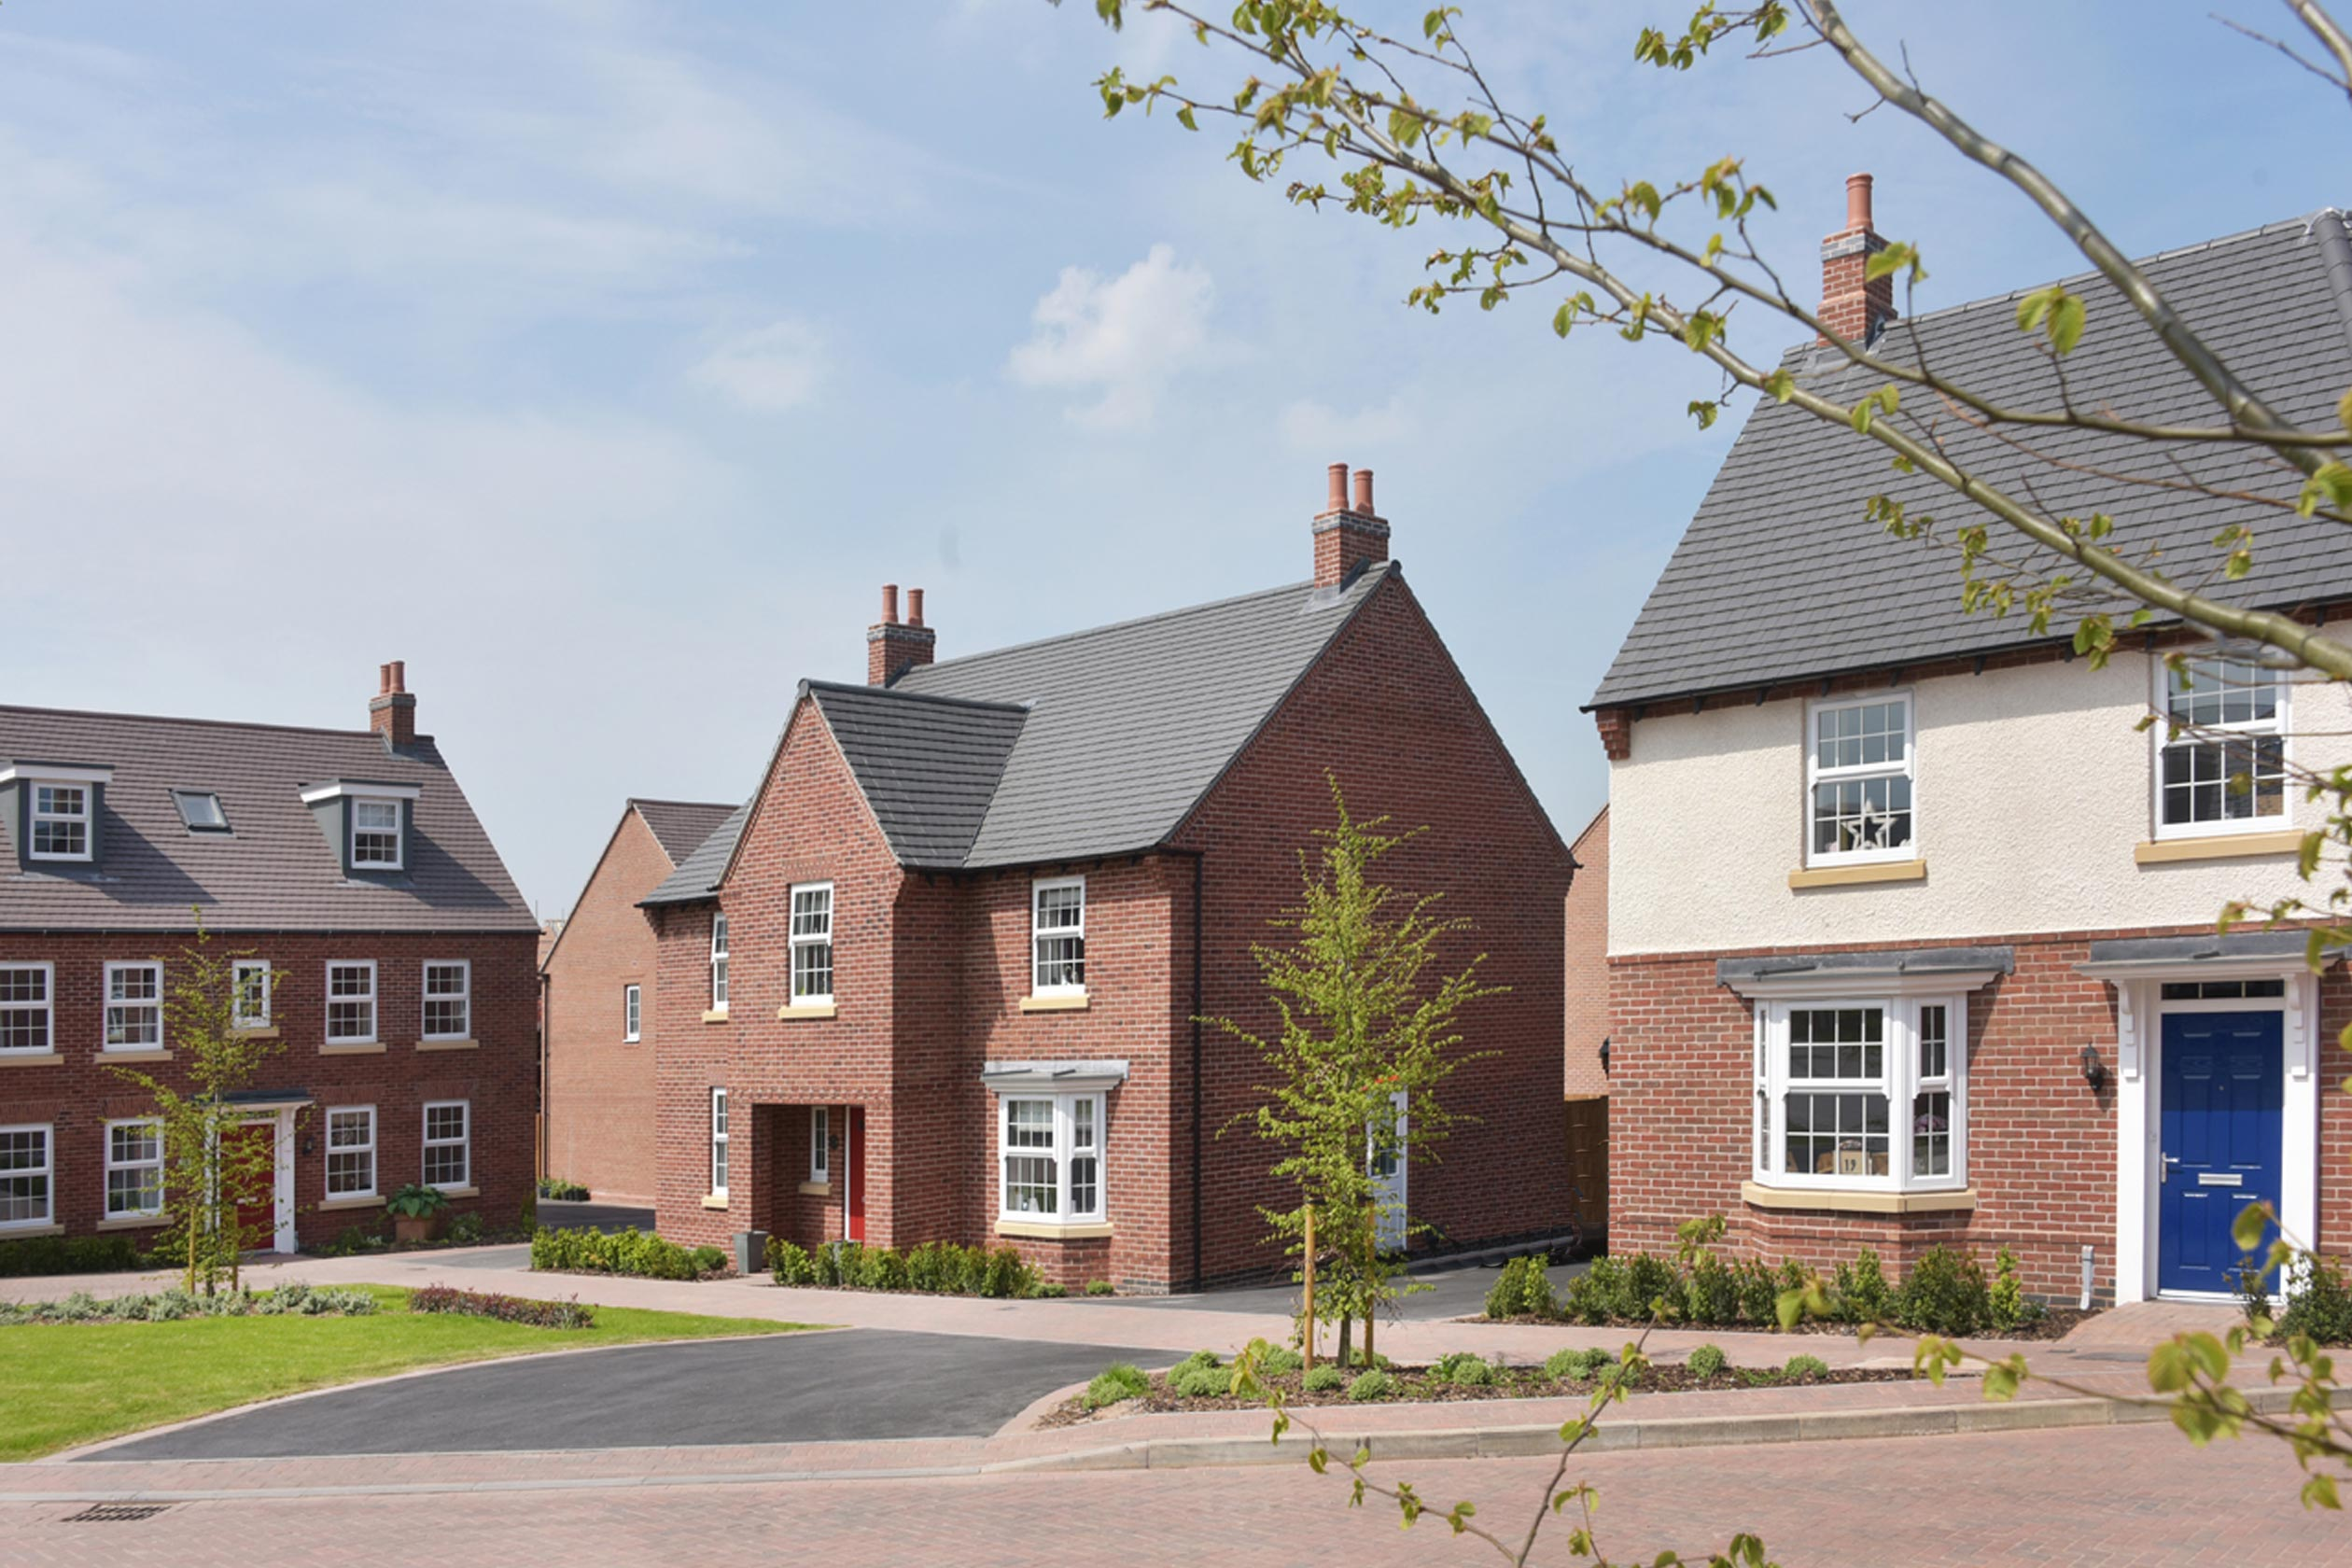 New Build Homes in Drakelow